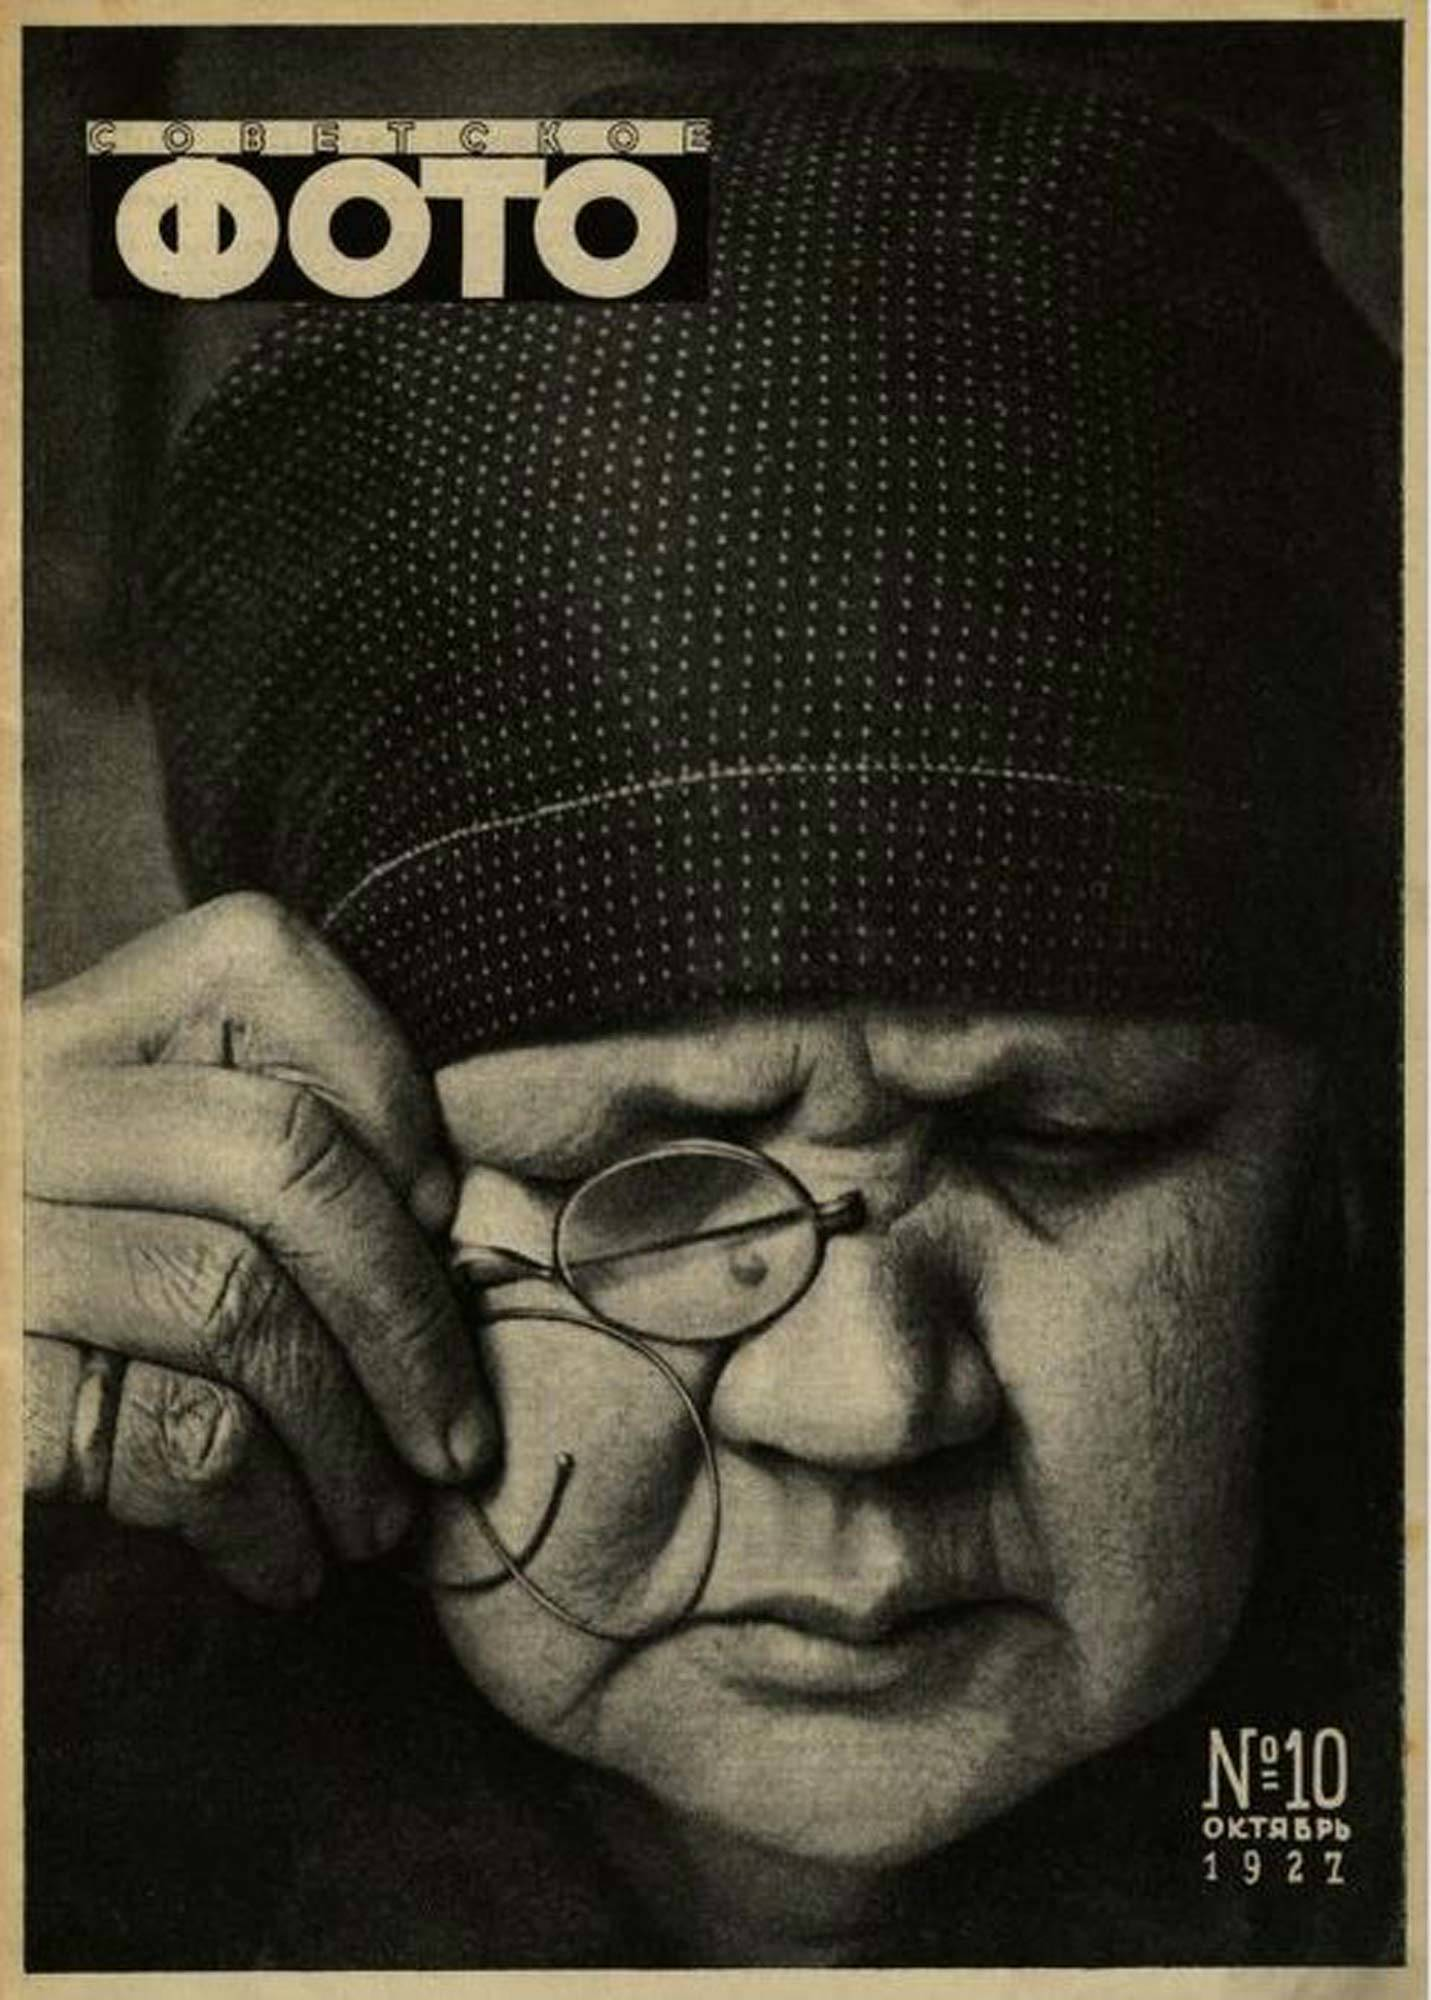 Aleksandr-Rodchenko-Photo_010